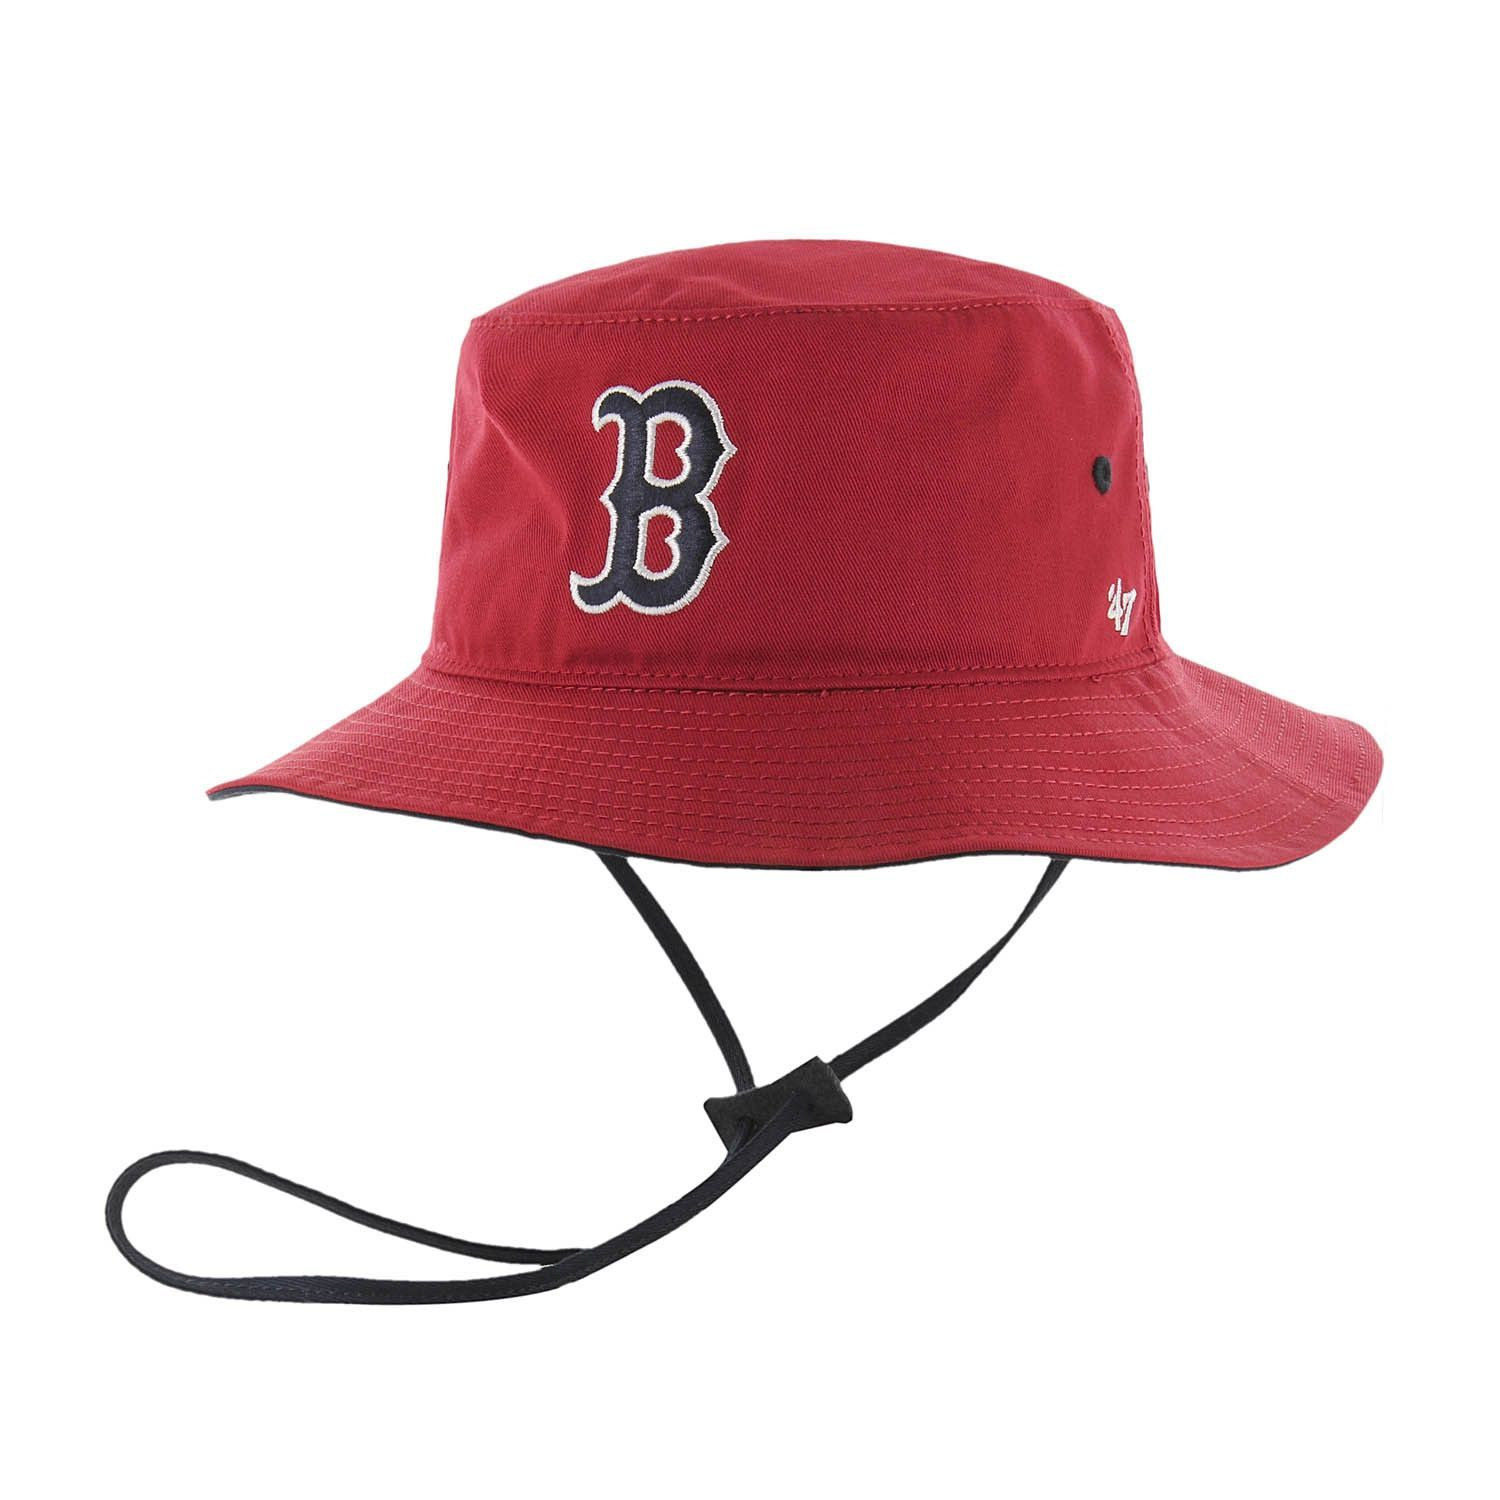 1dfd21894e246 Red Sox bucket hat. Perfect to keep the sun out of the eyes of Red Sox  fans